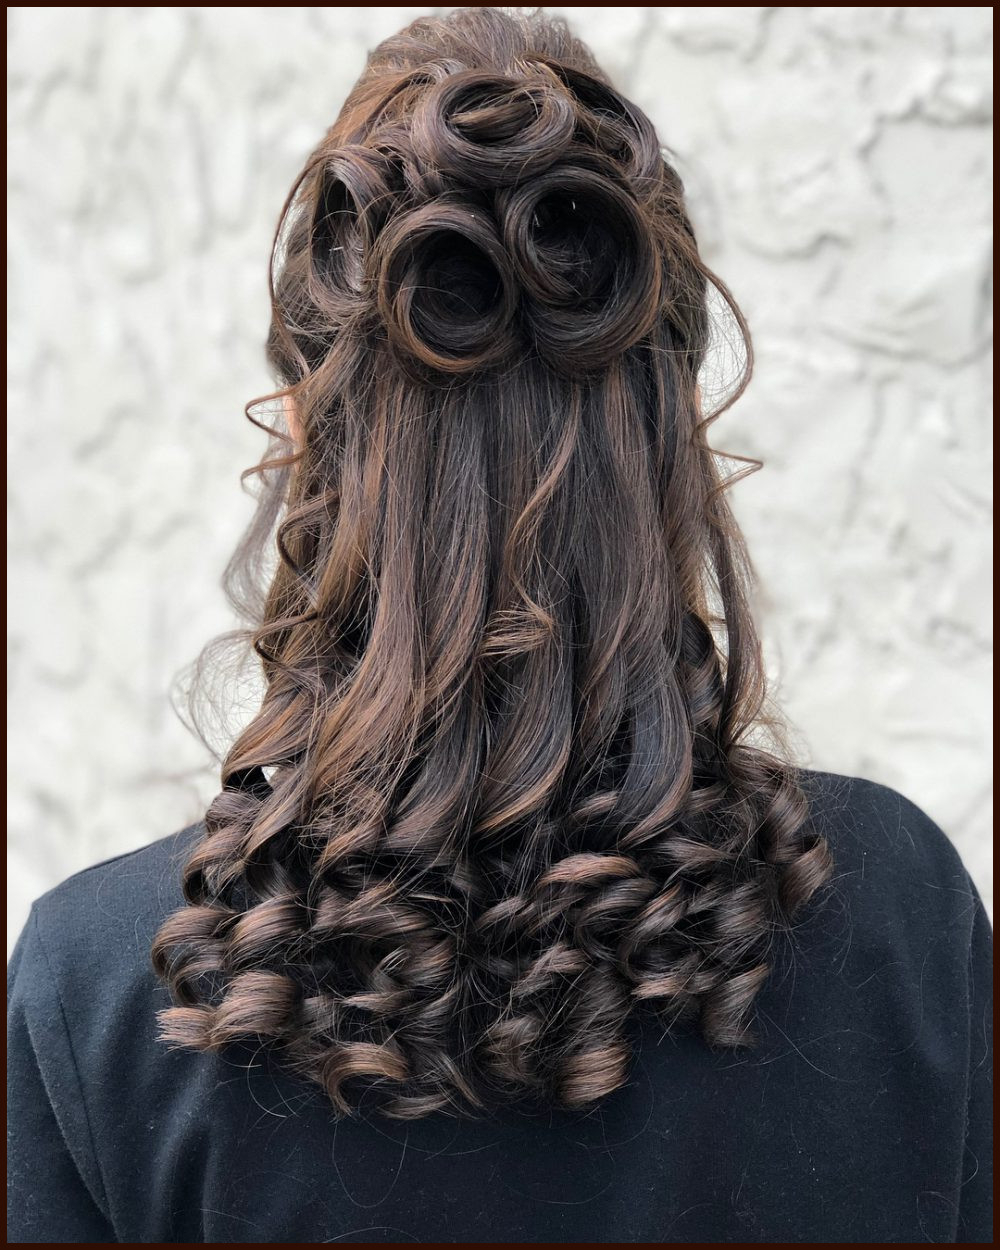 Curly Braided Hairstyles For Prom 371756 23 Cute Prom Hairstyles For Intended For Preferred Formal Curly Hairdo For Long Hairstyles (View 7 of 20)